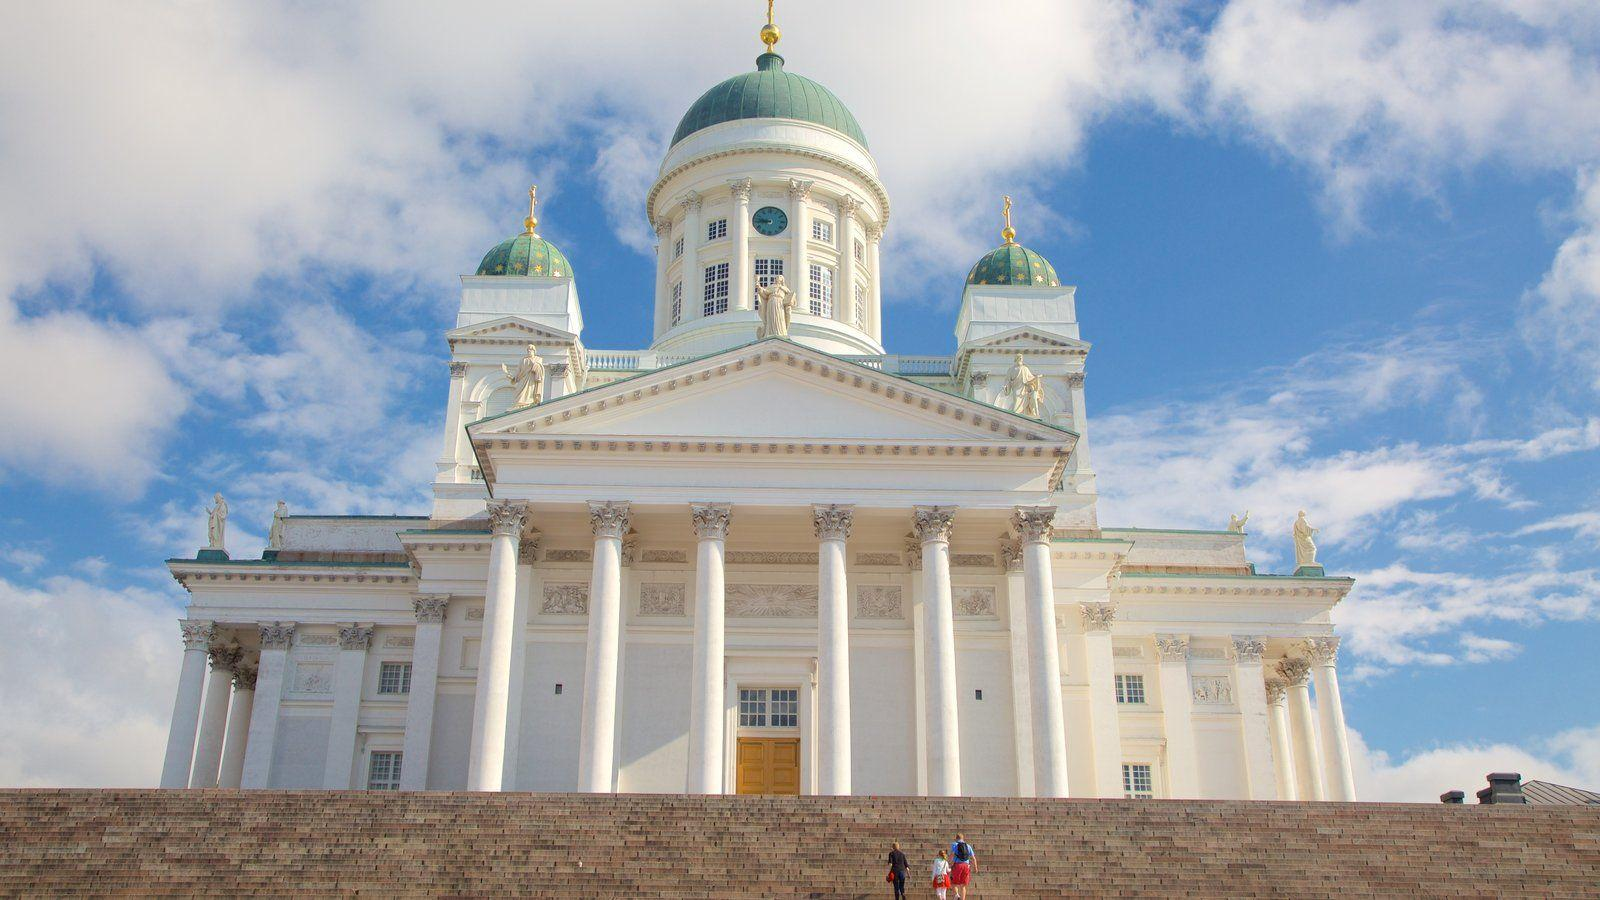 Helsinki Cathedral Pictures: View Photos & Image of Helsinki Cathedral